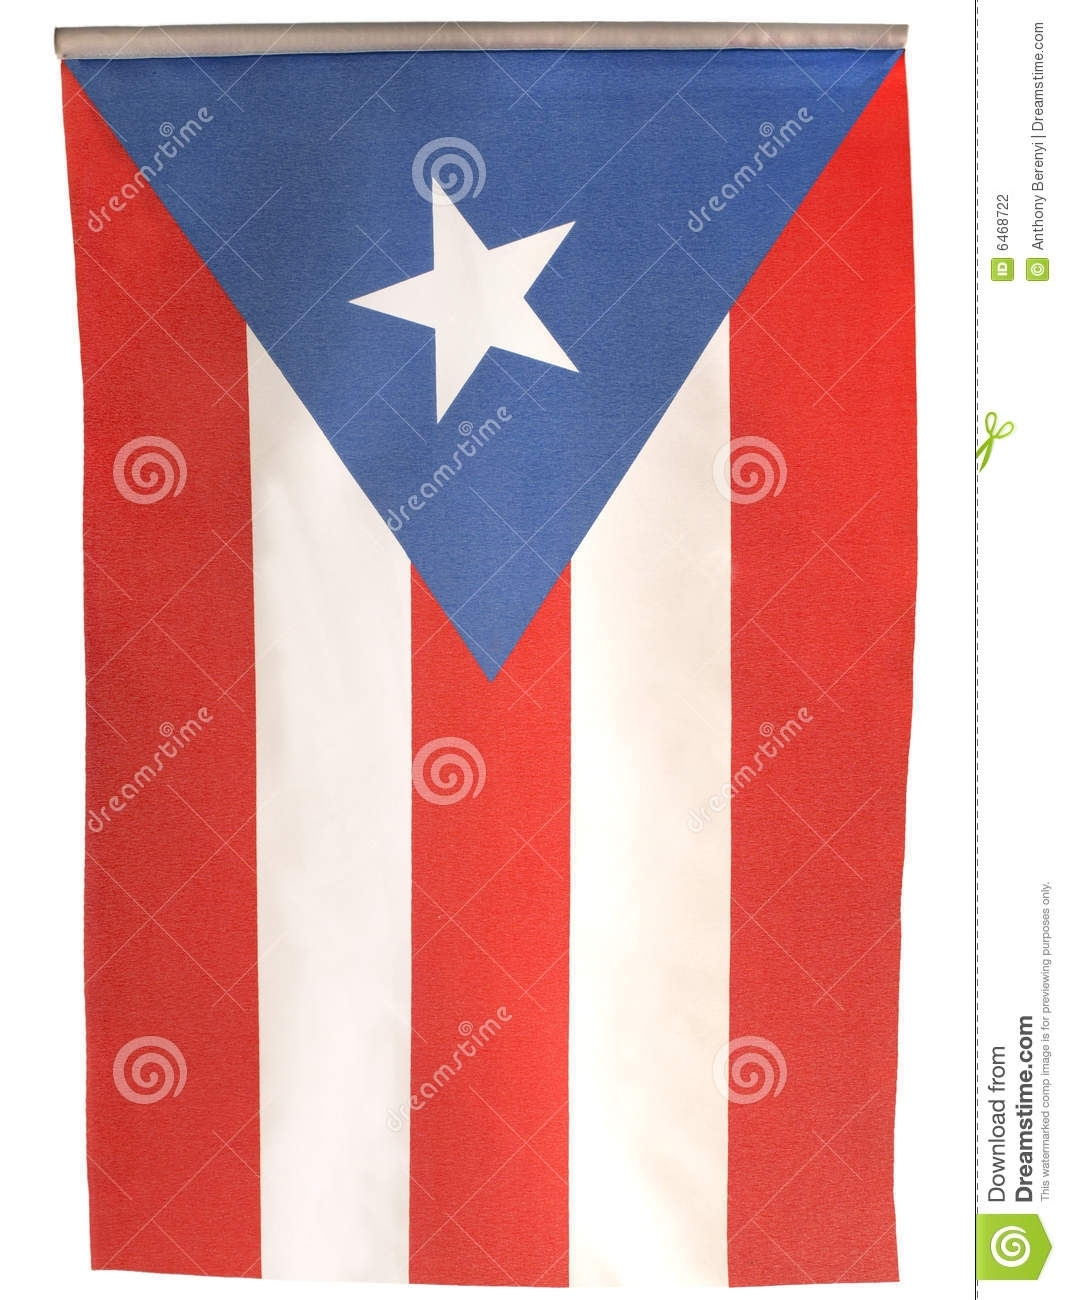 vertical flag puerto rico flag stock photo - image of nation, rico